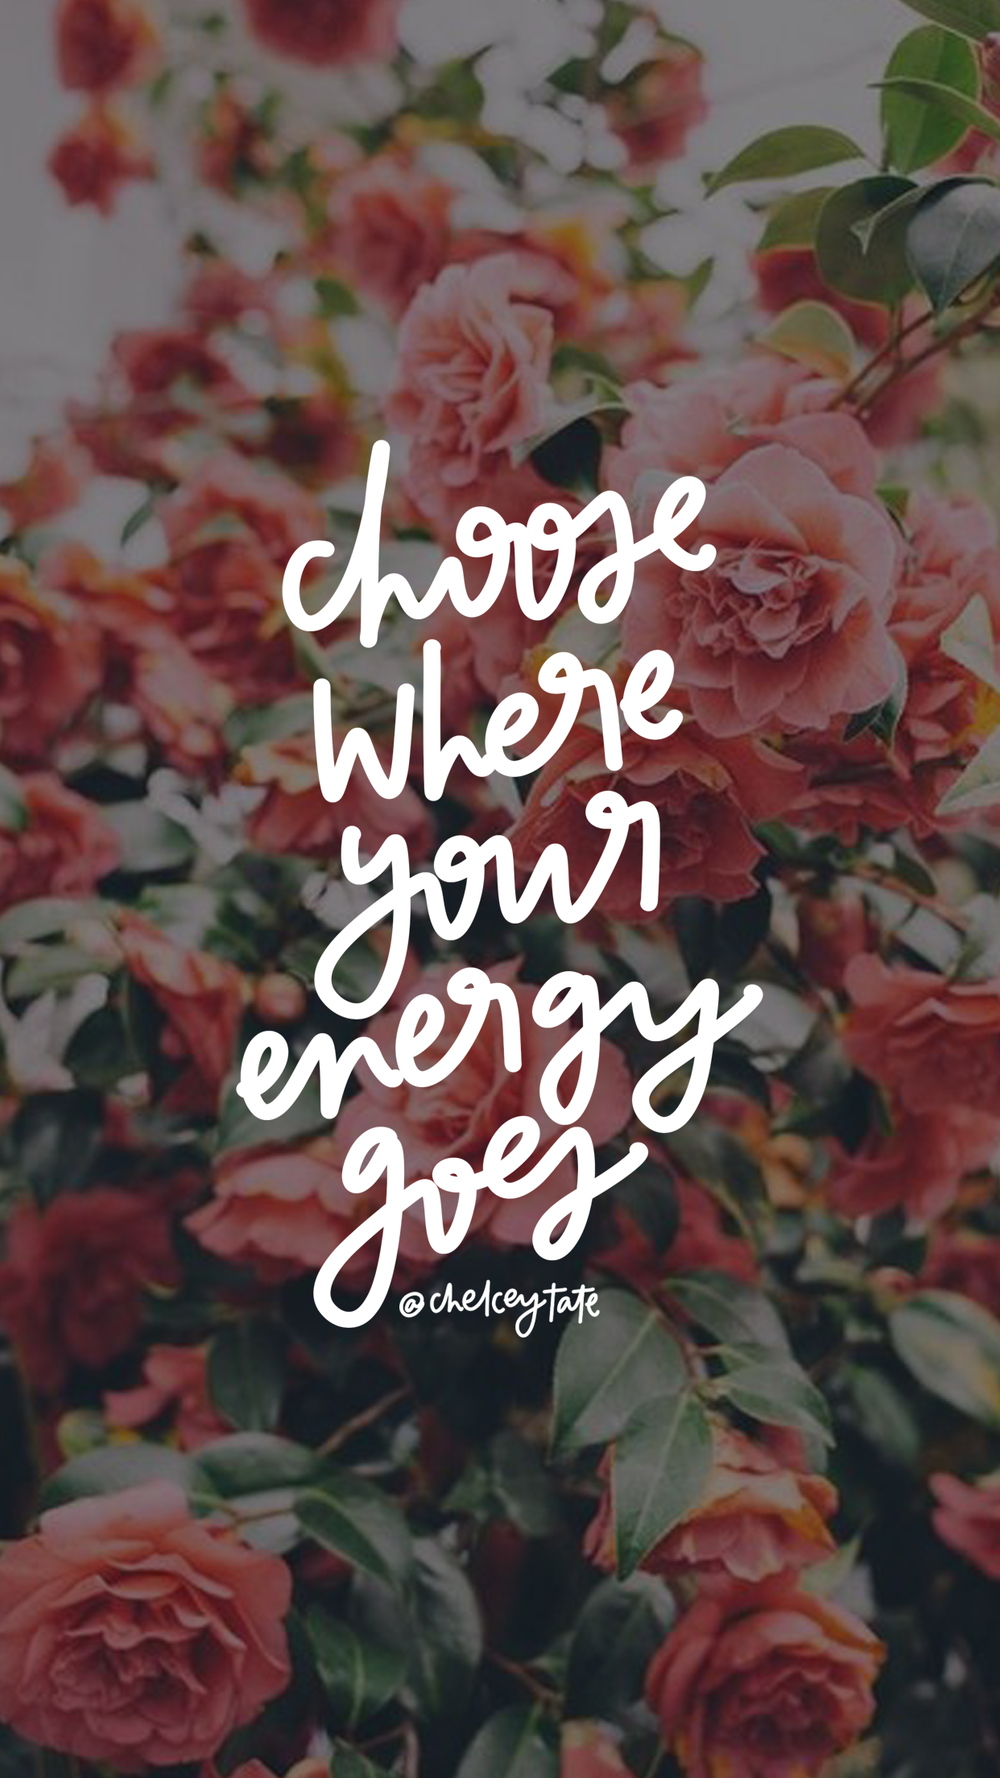 Choose Where Your Energy Goes via Artwork via Chelcey Tate www.chelceytate.com